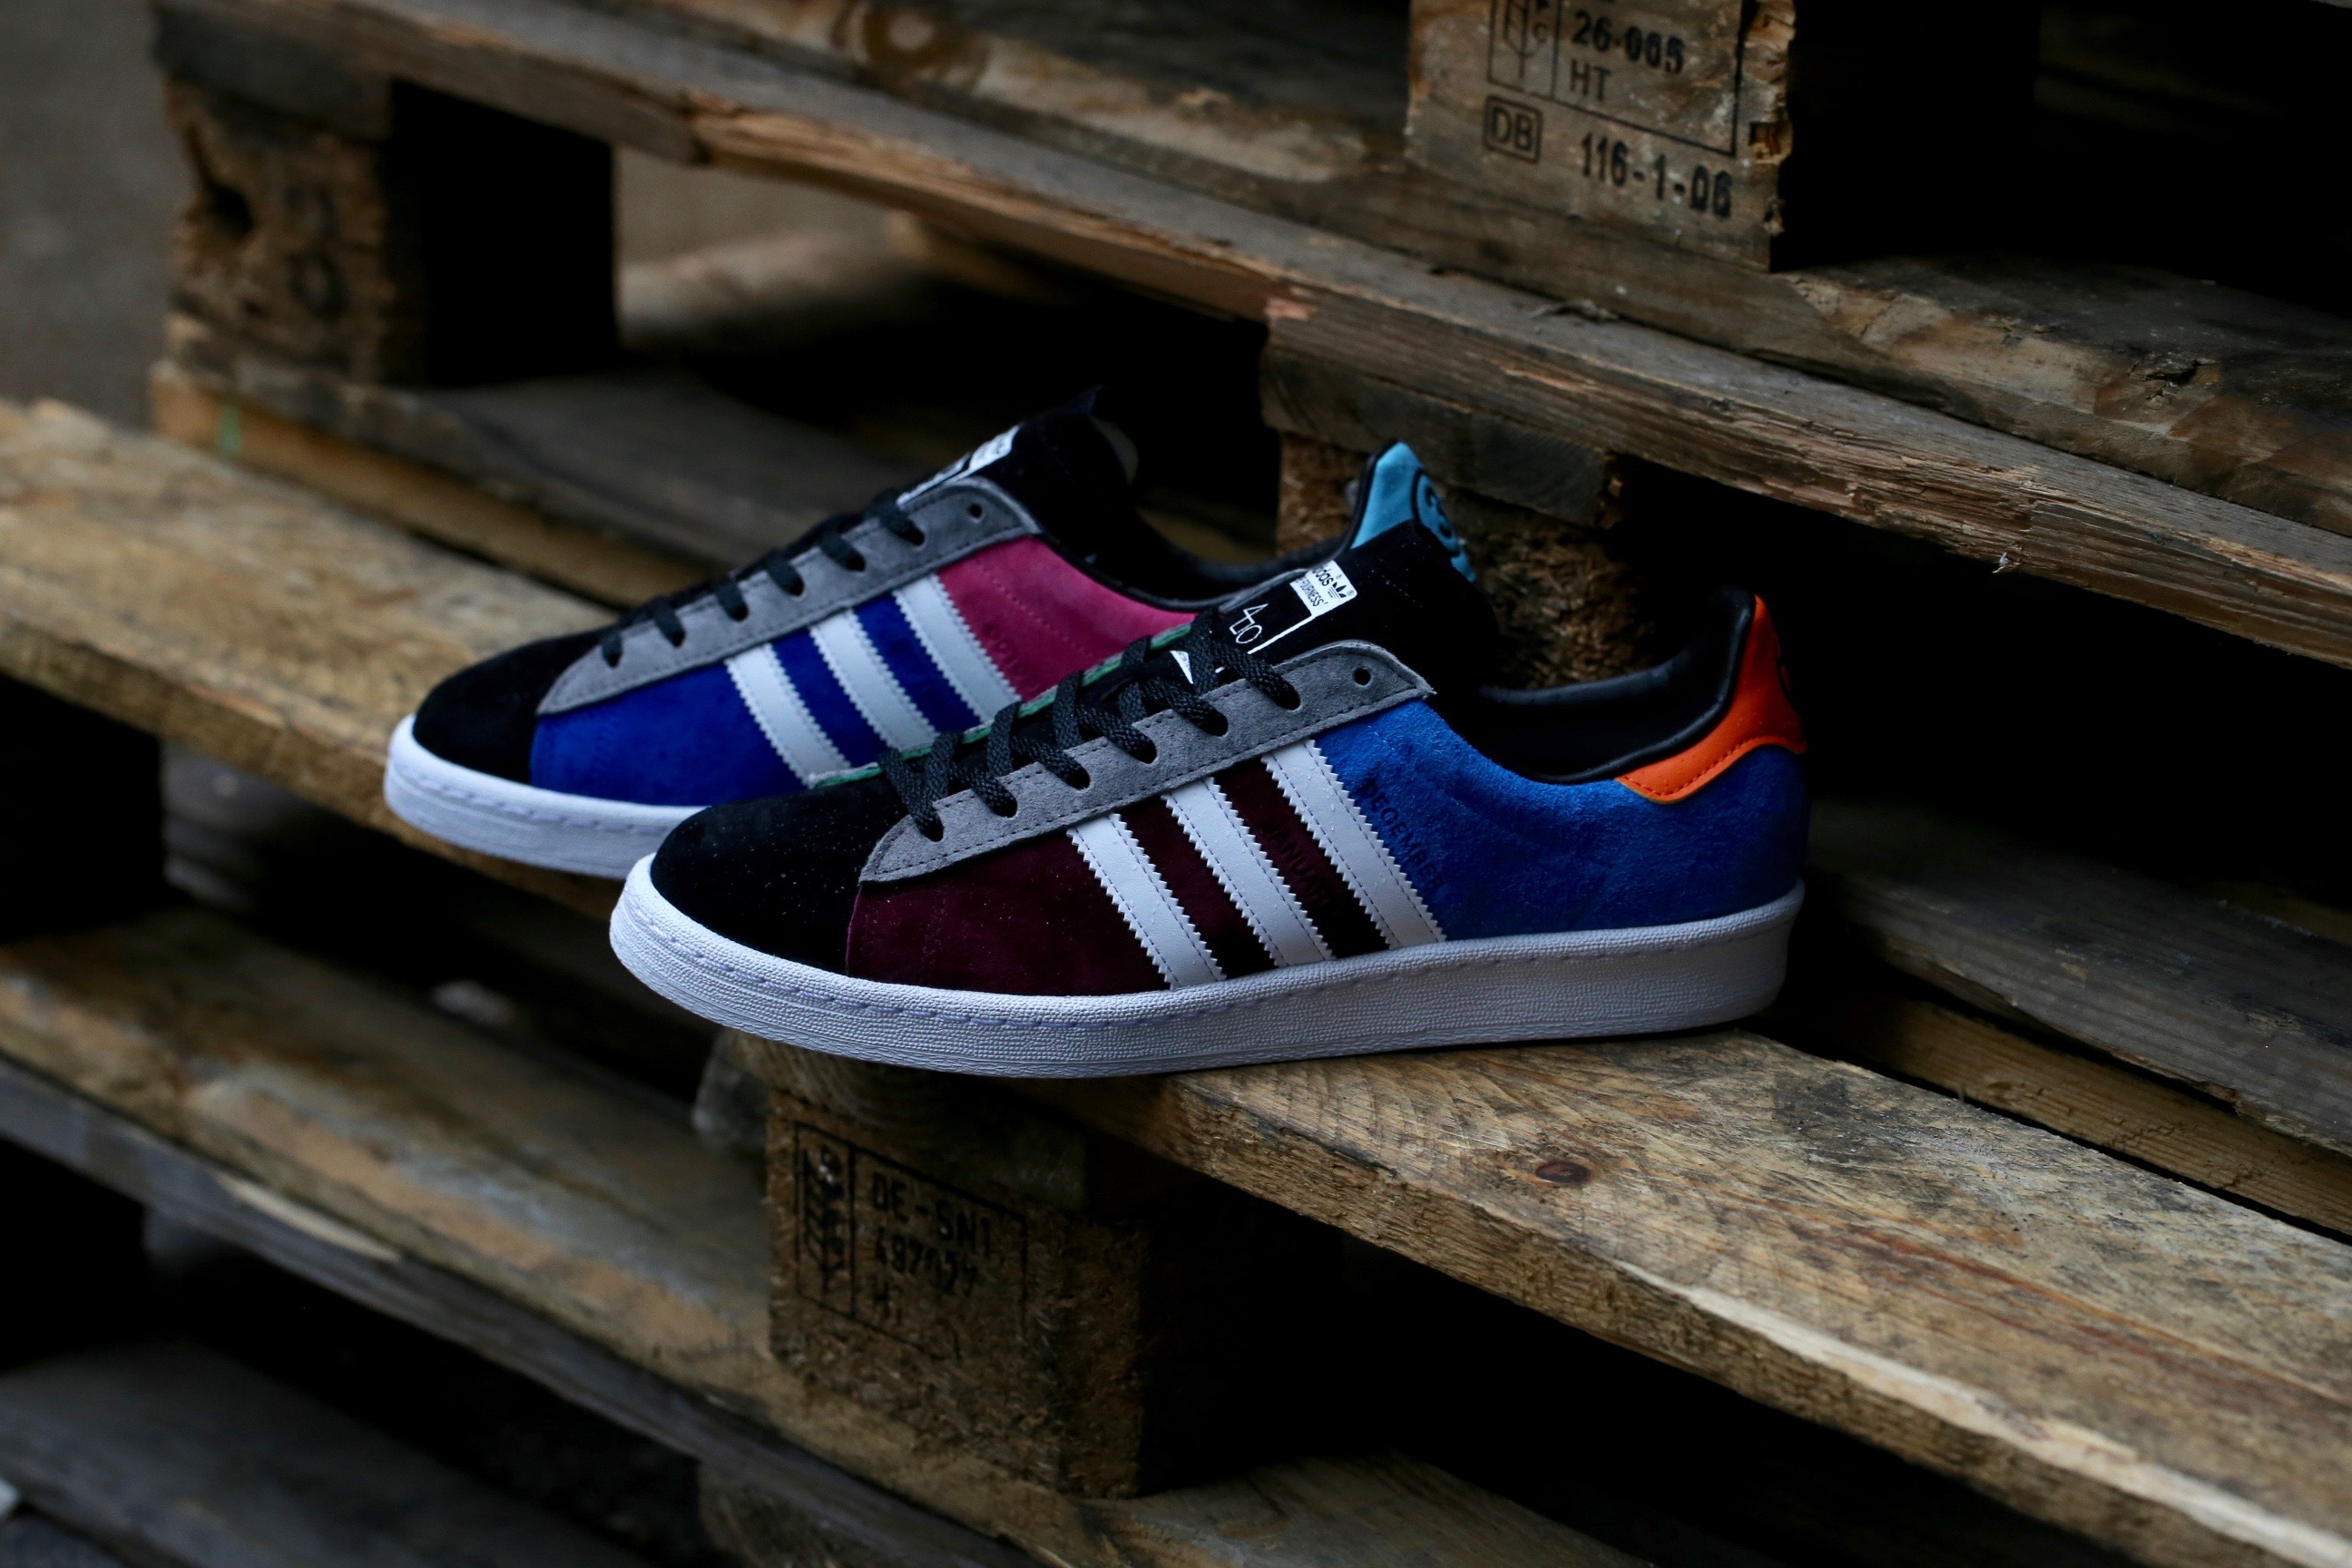 adidas campus 80s jam fourness shoes